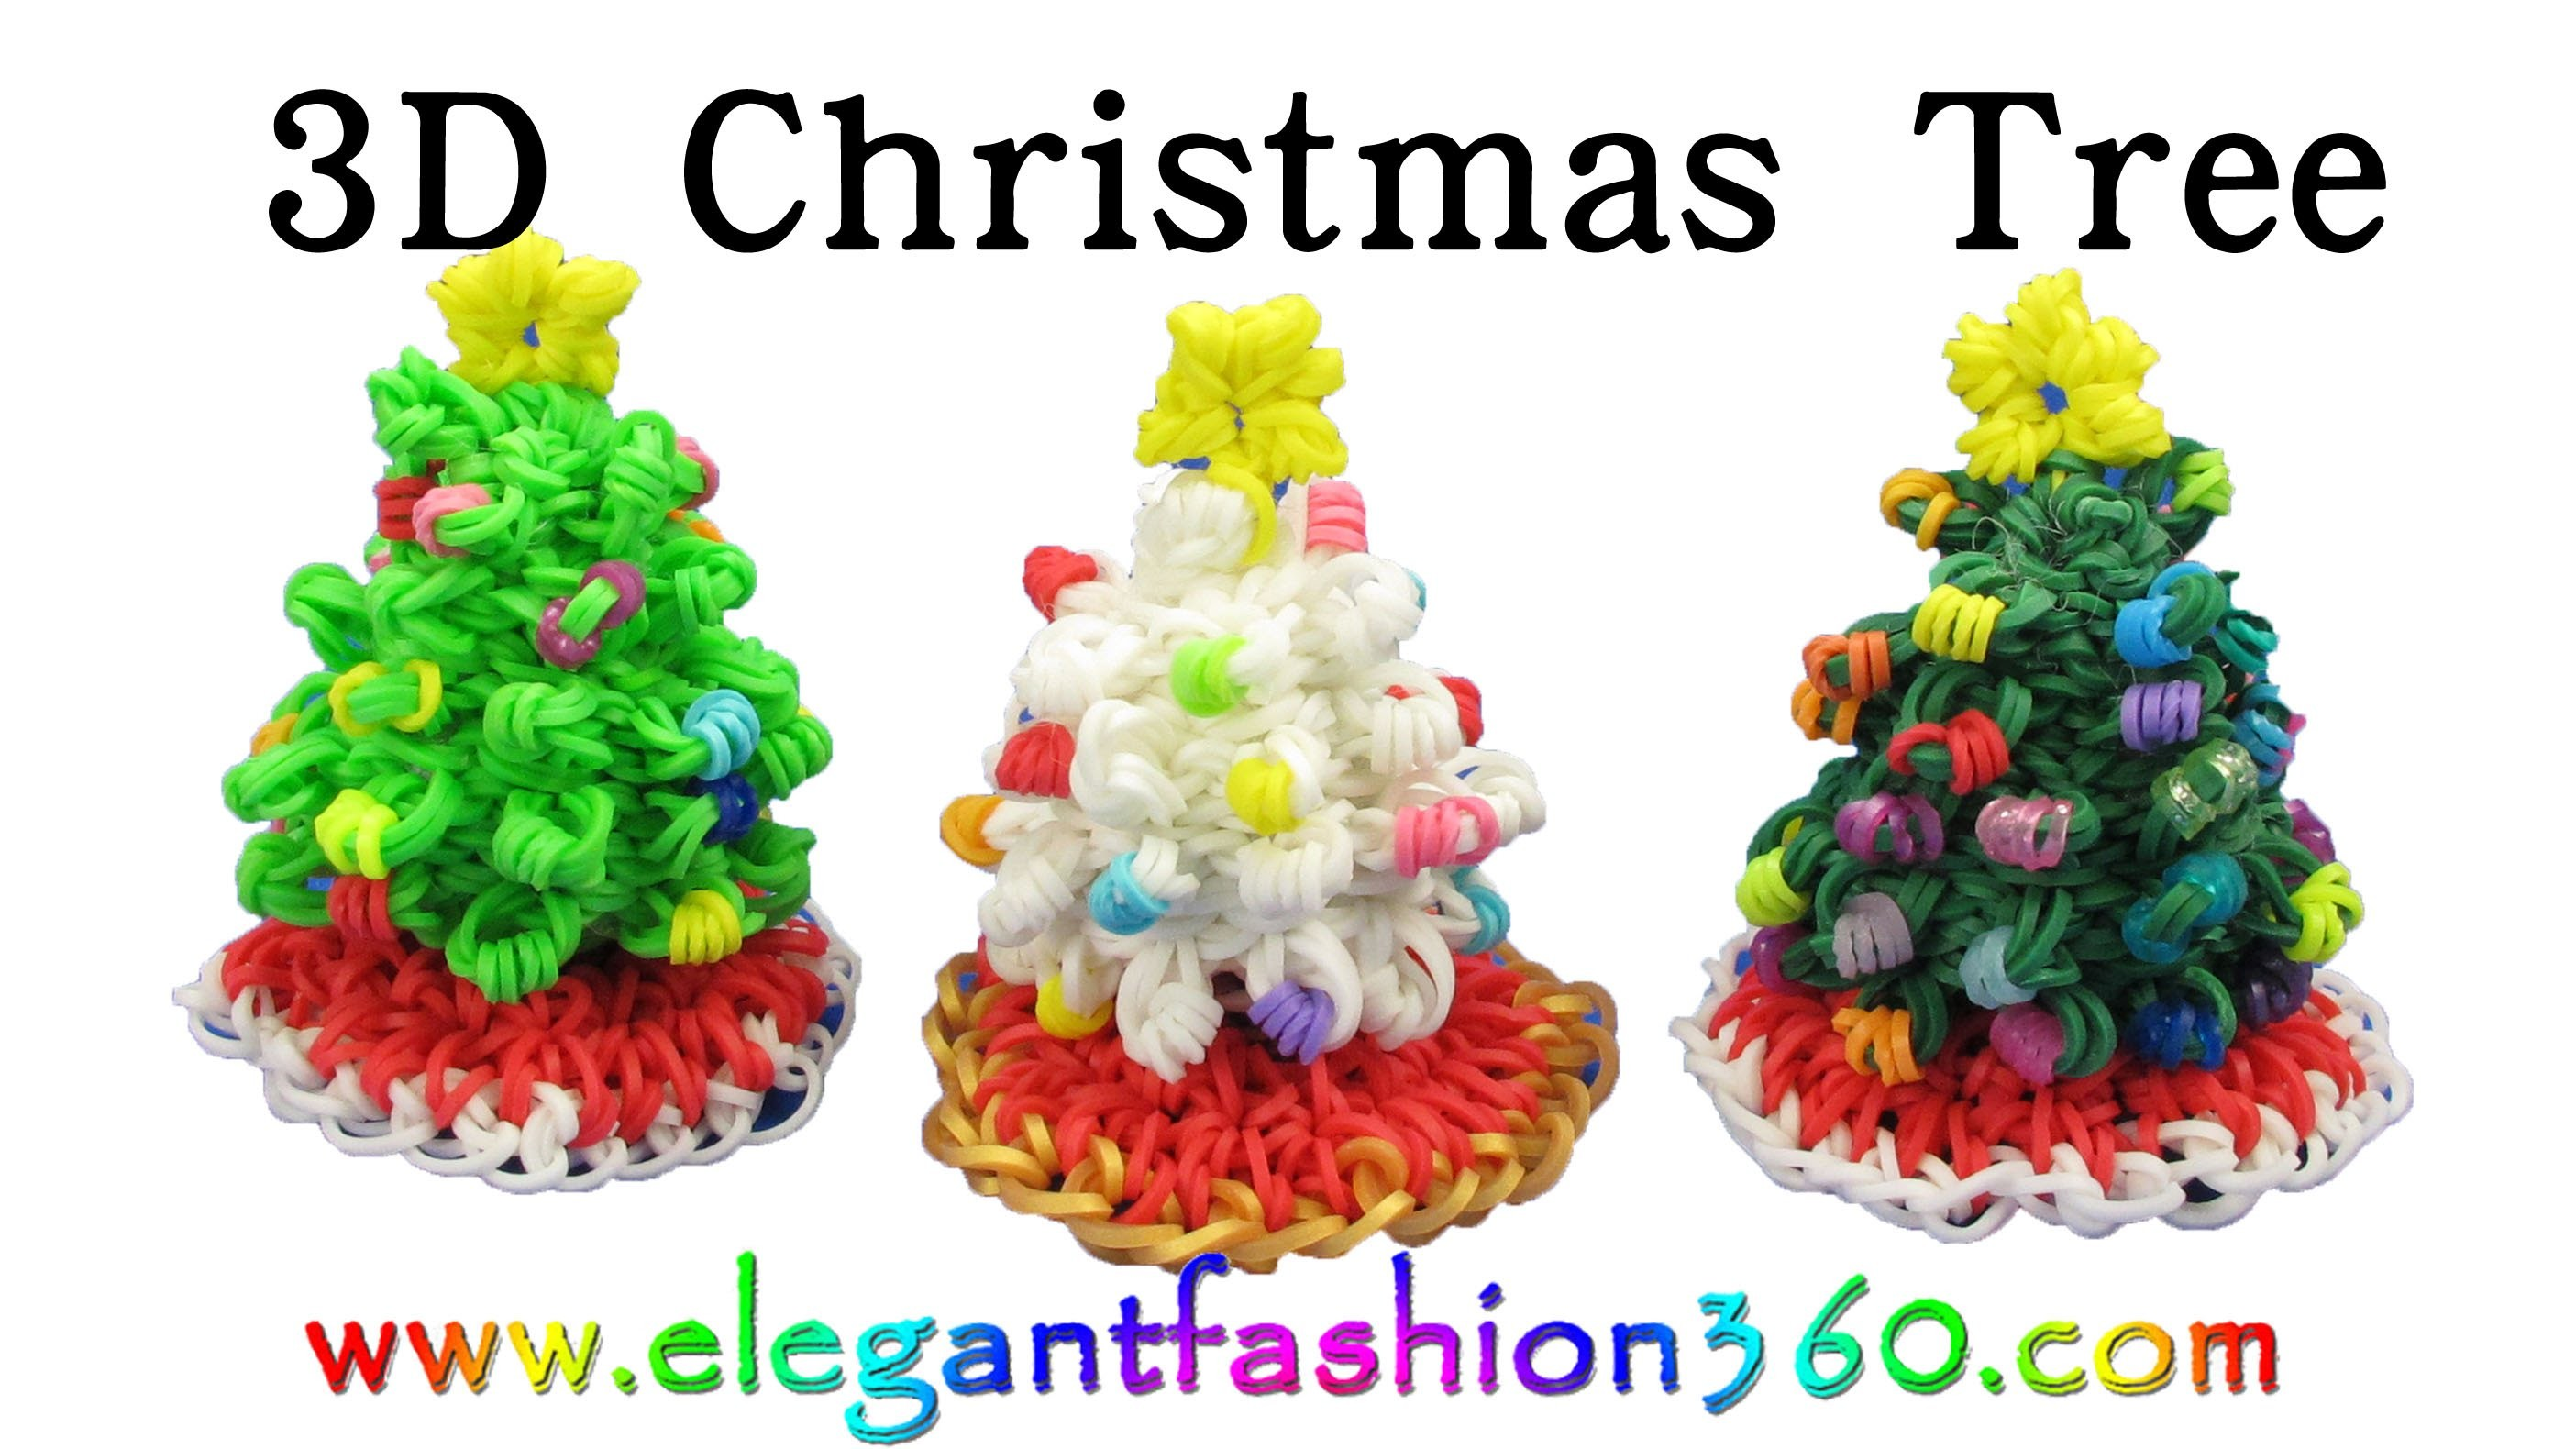 Rainbow Loom Christmas Tree 3D and Skirt Charm Holiday.Ornaments- How to Loom Band tutorial